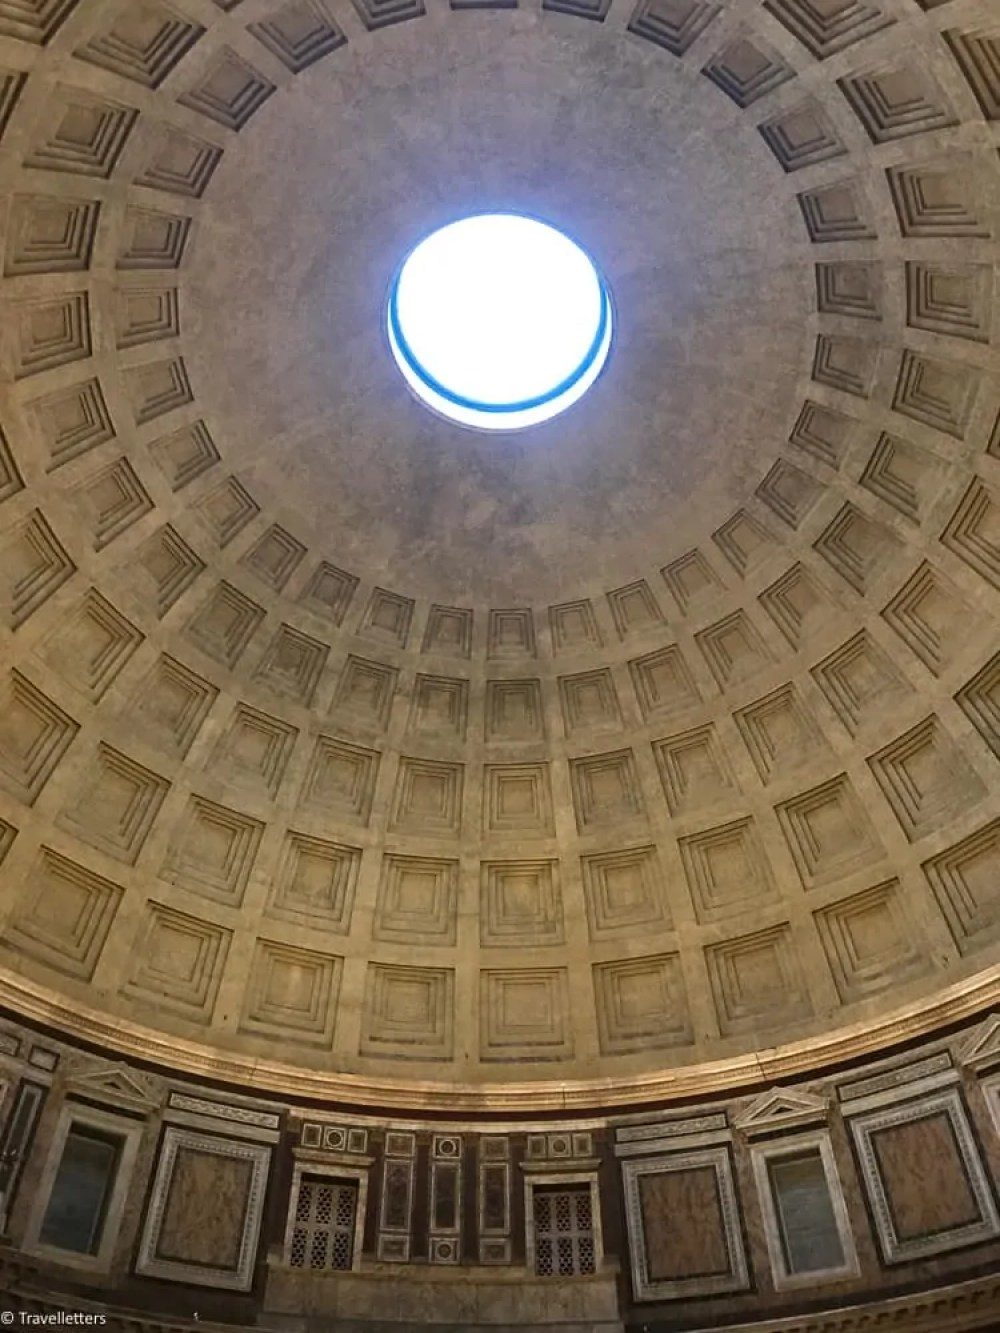 Oculus at Pantheon in Rome, things to do in Rome, St. Peter's Square, St. Peter's Dome in Rome, visit Rome in winter, Rome in winter, winter in Rome, Vatican city, 2-3 days Rome itinerary